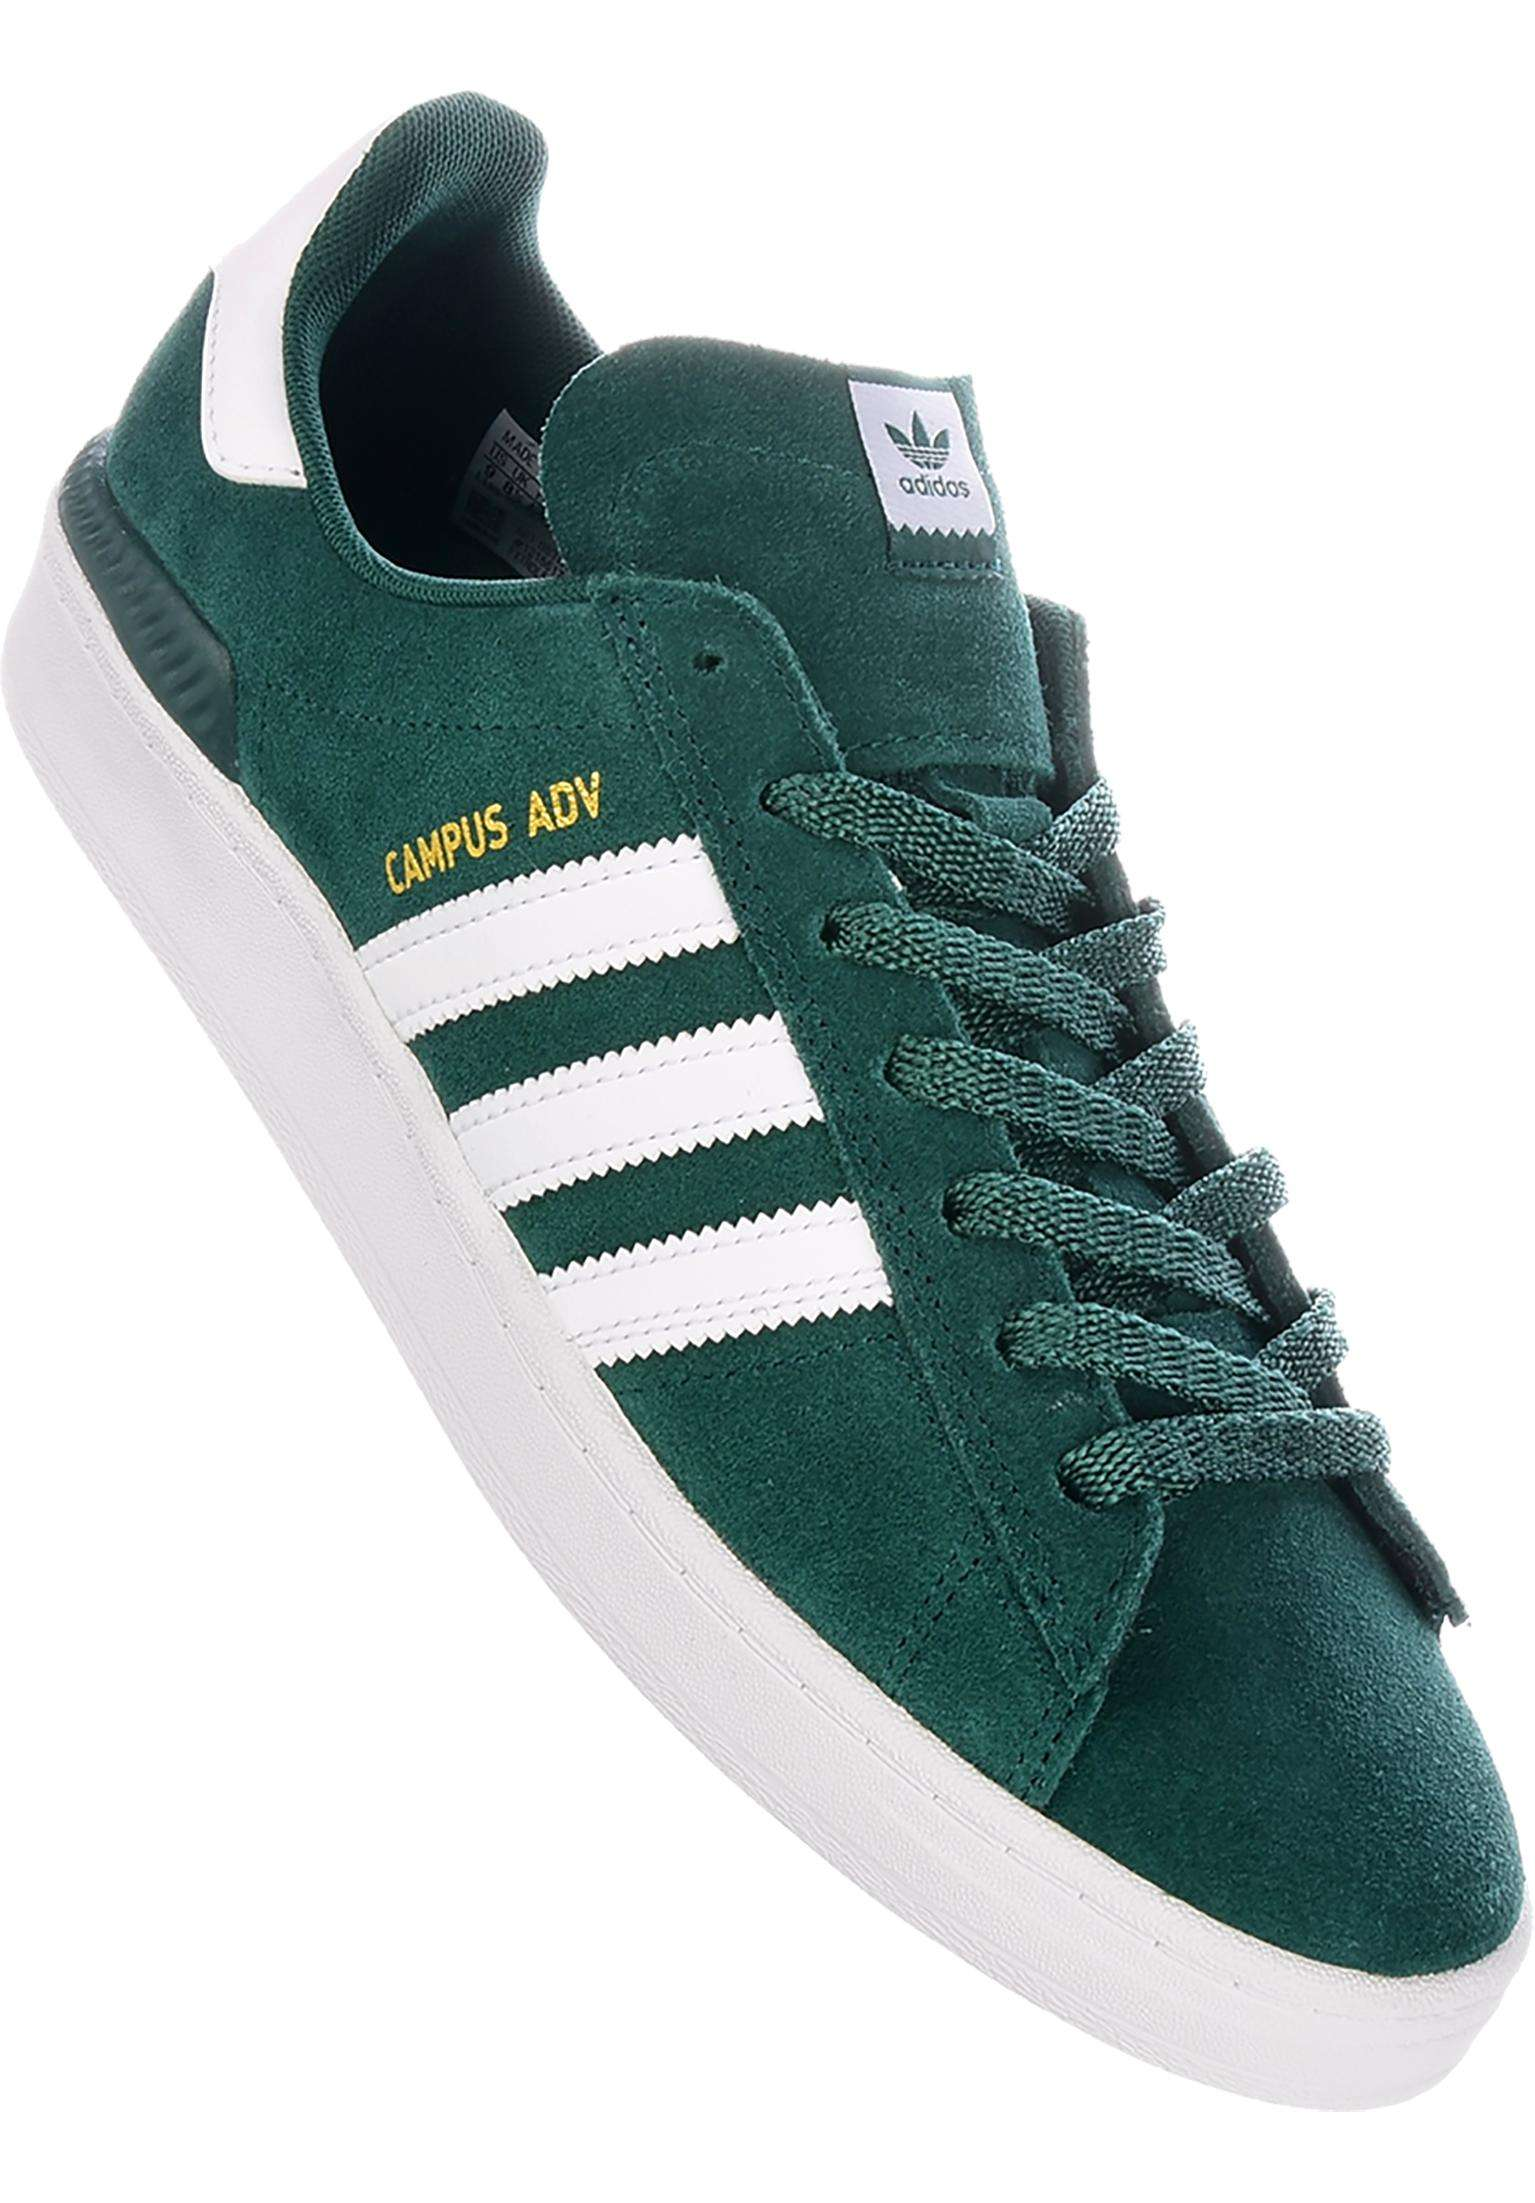 timeless design 807ff 9b697 Campus ADV adidas-skateboarding All Shoes in green-white-gold for Men    Titus